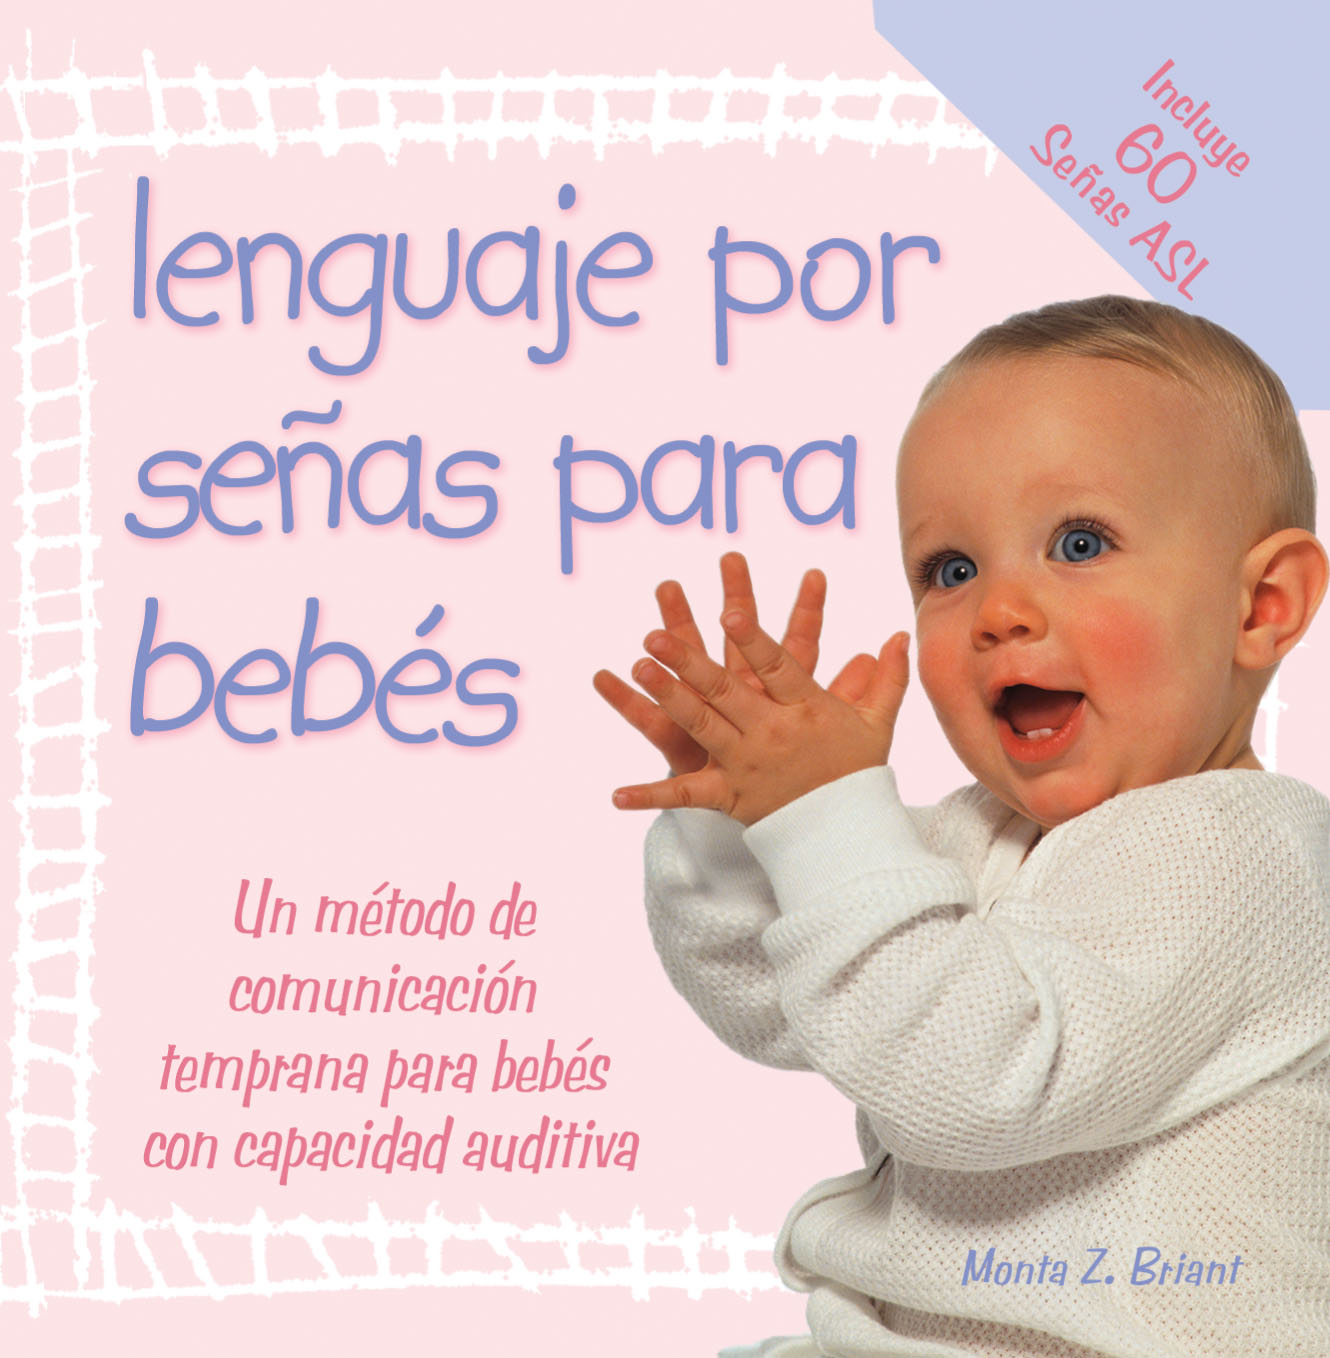 Lenguaje por Señas para Bebés   by Monta Z. Briant  (Spanish edition)   This is the go-anywhere book that makes signing with your baby easy and convenient! No wonder it's the best selling baby sign language book on the market…    READ MORE/ BUY NOW